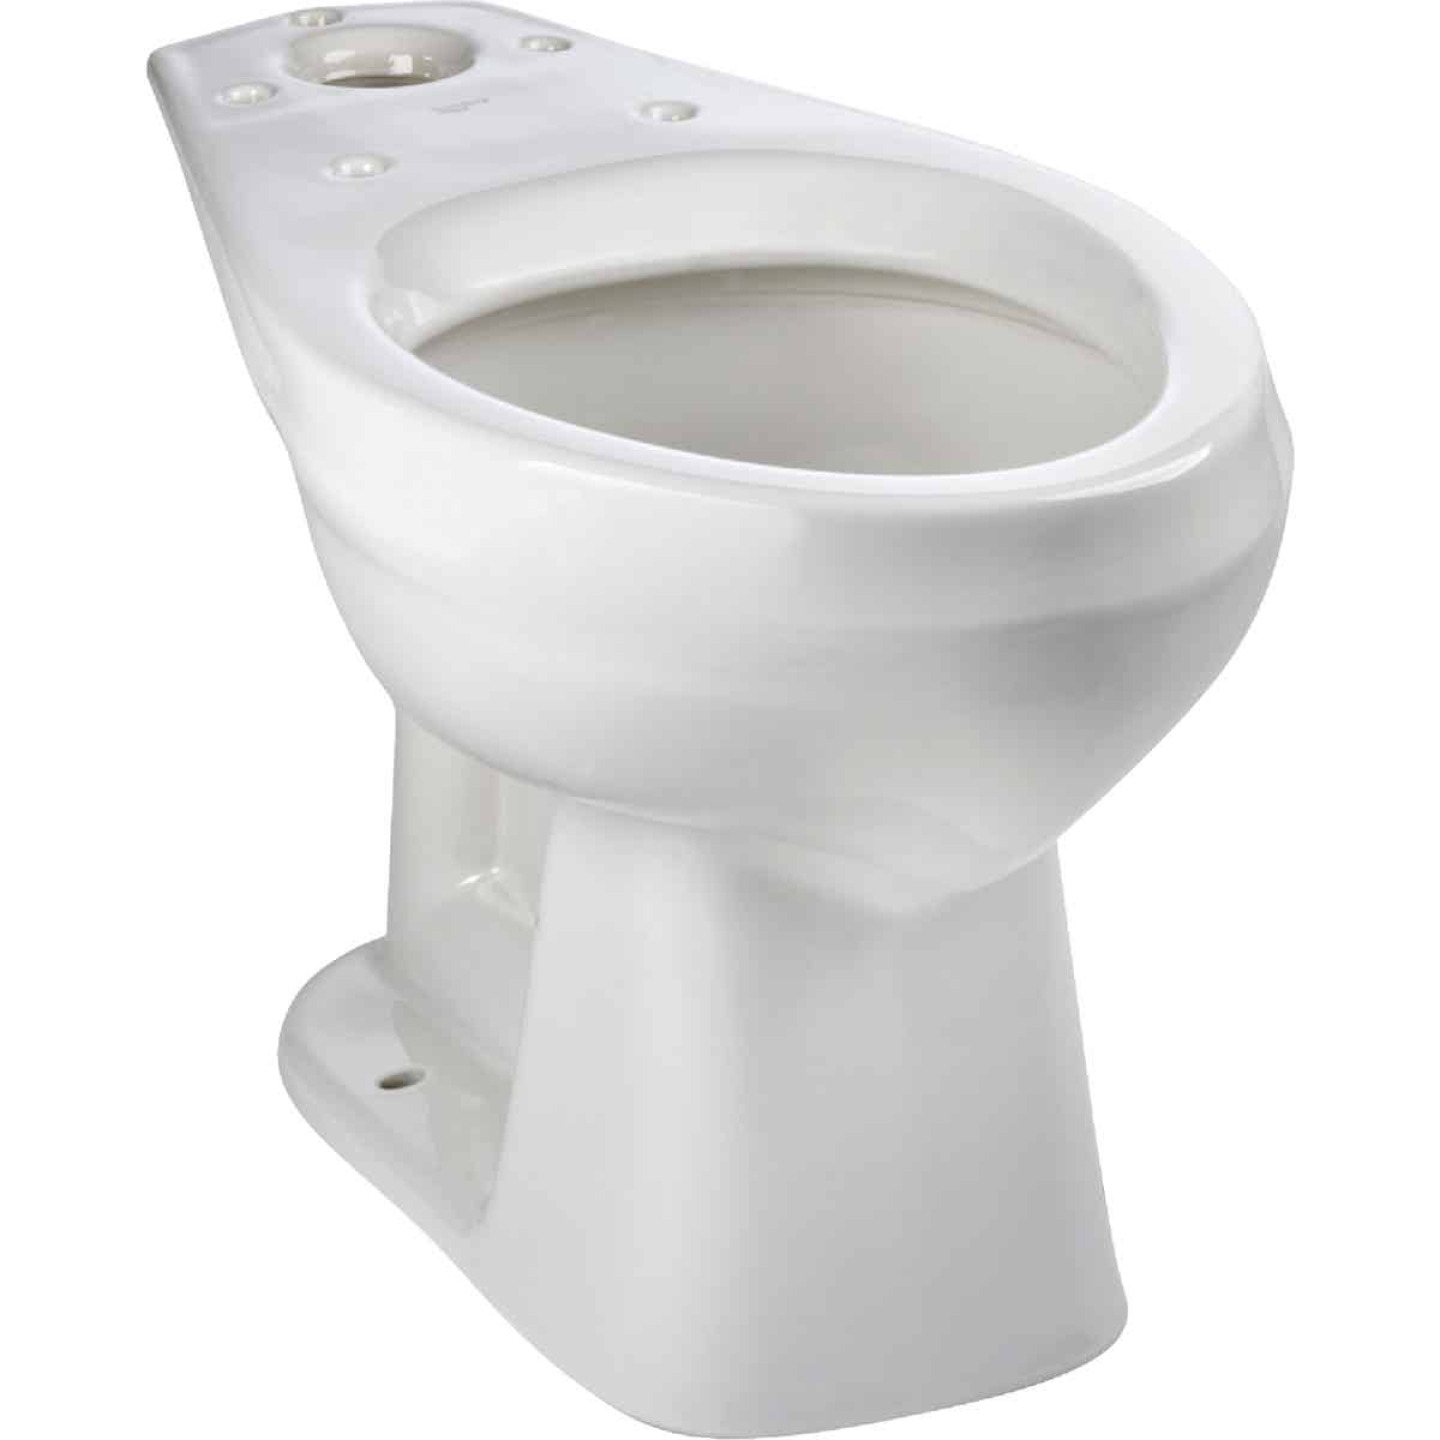 Mansfield Alto Smartheight White Elongated 16-7/8 In. ADA Toilet Bowl Image 1